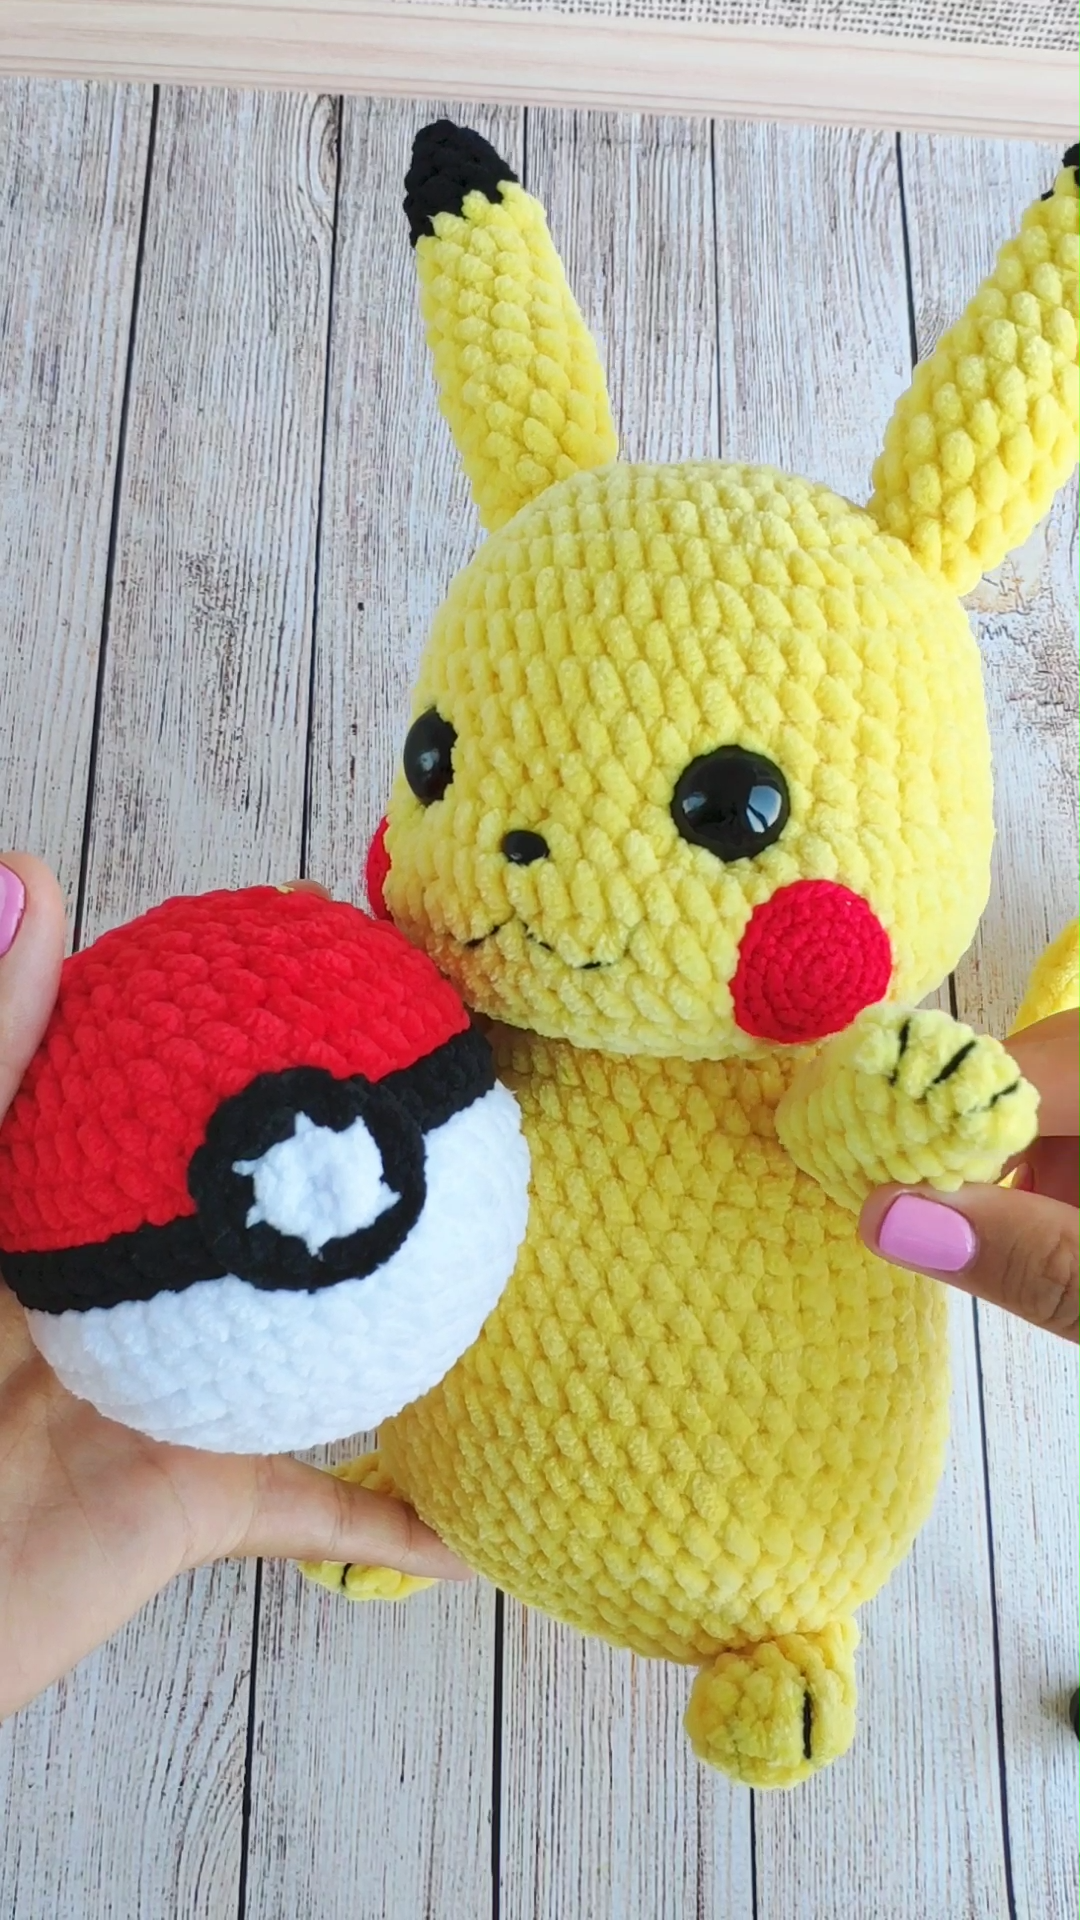 The Moody Homemaker: Crochet / Amigurumi Pikachu & Pokéball | 1920x1080